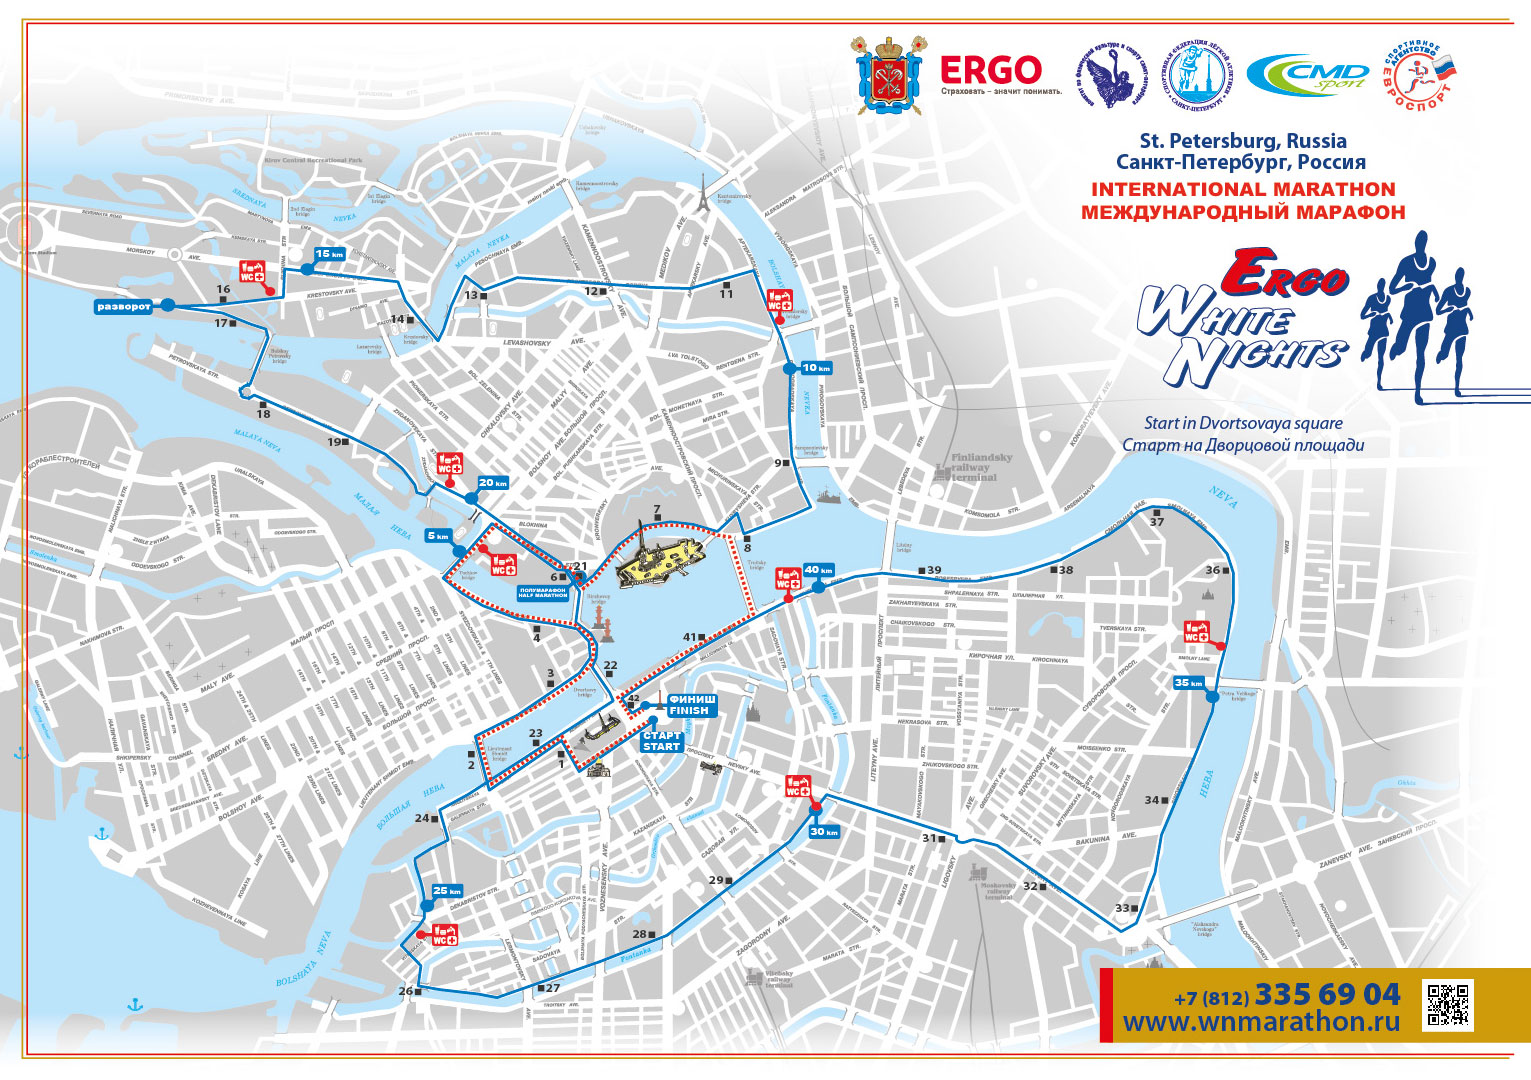 Marathon, Ergo White Nights, Waveaccess, route, winner, distance, 42 km, 10 km, marathoners, runner